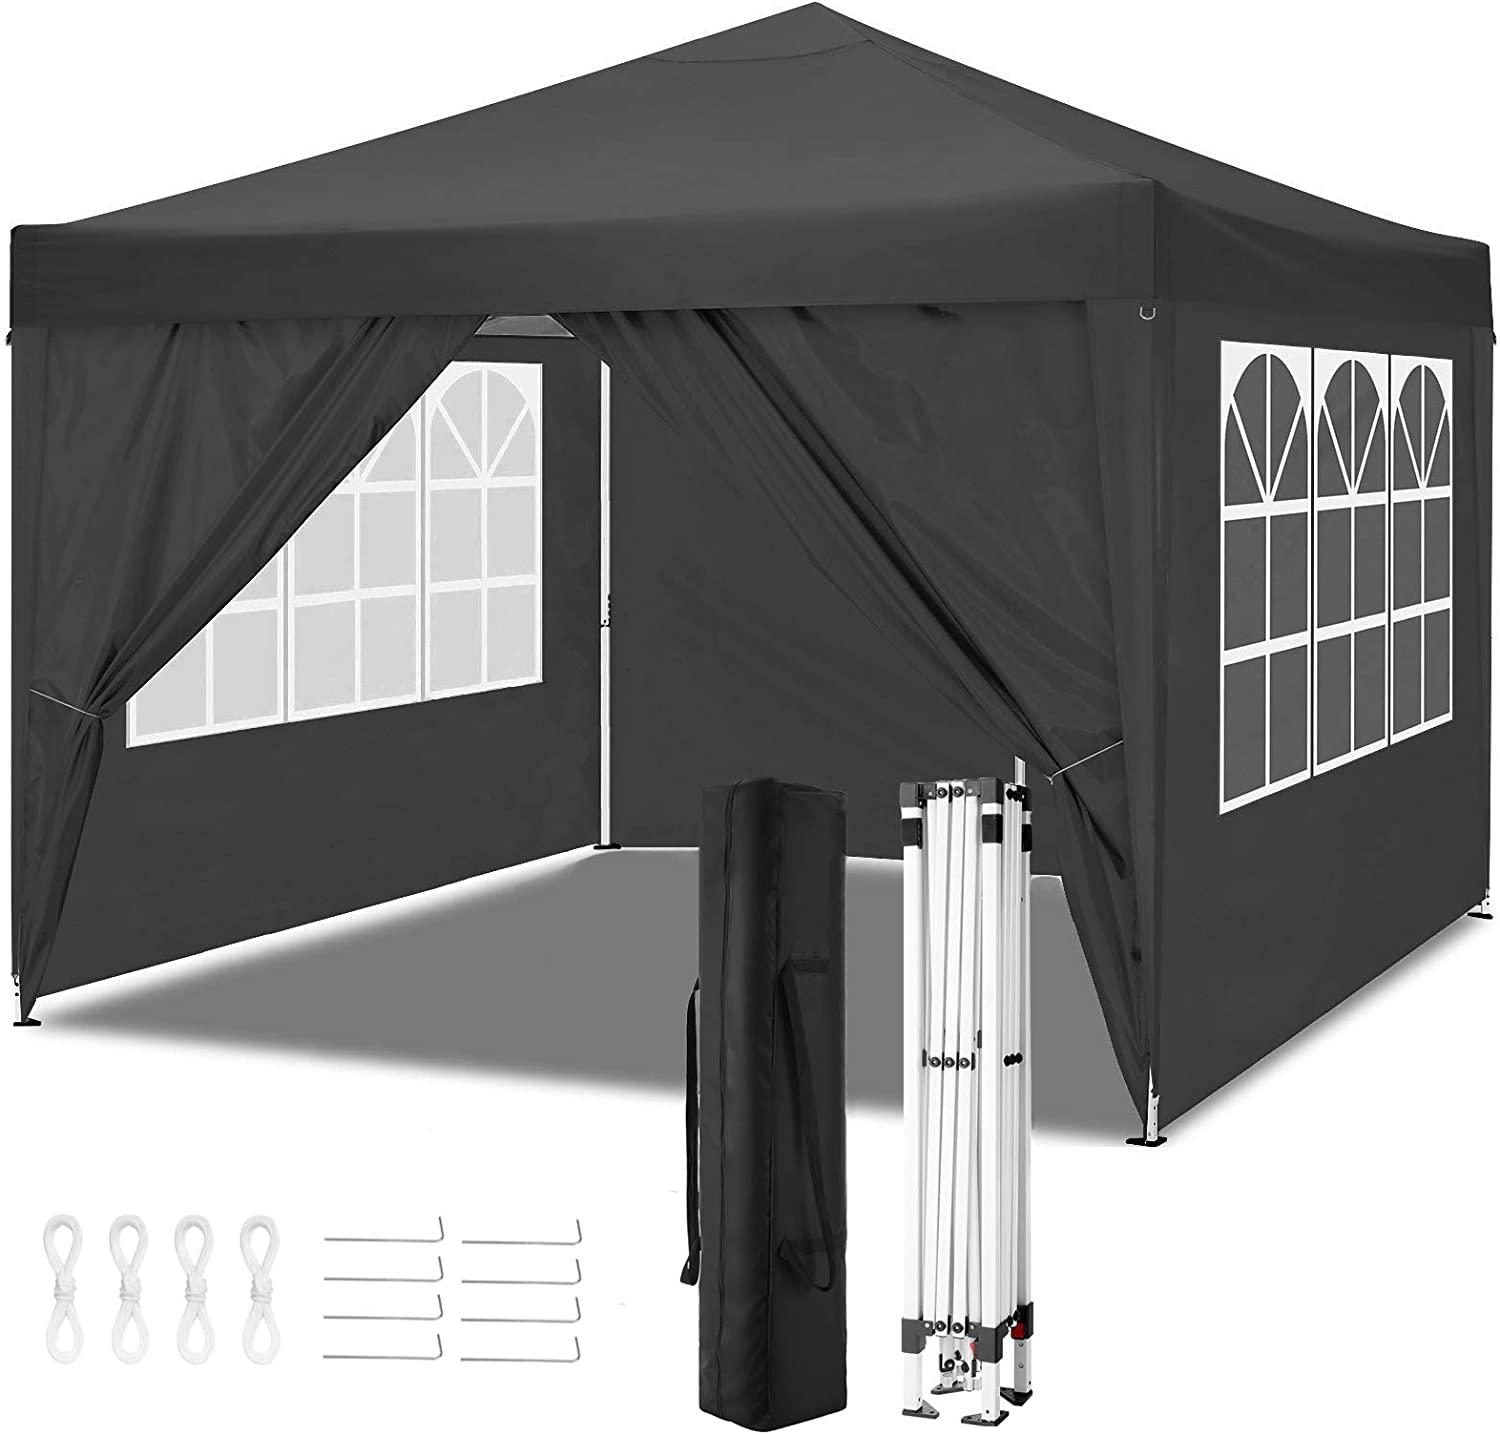 TOOLUCKCANOPY 10x10ft Pop up Canopy Tent Commercial Instant Shelter Heavy Duty Canopy with 4 Sun Wall, Carry Bag, Stakes and Ropes (10x10ft with 4 Sun Walls, Black)